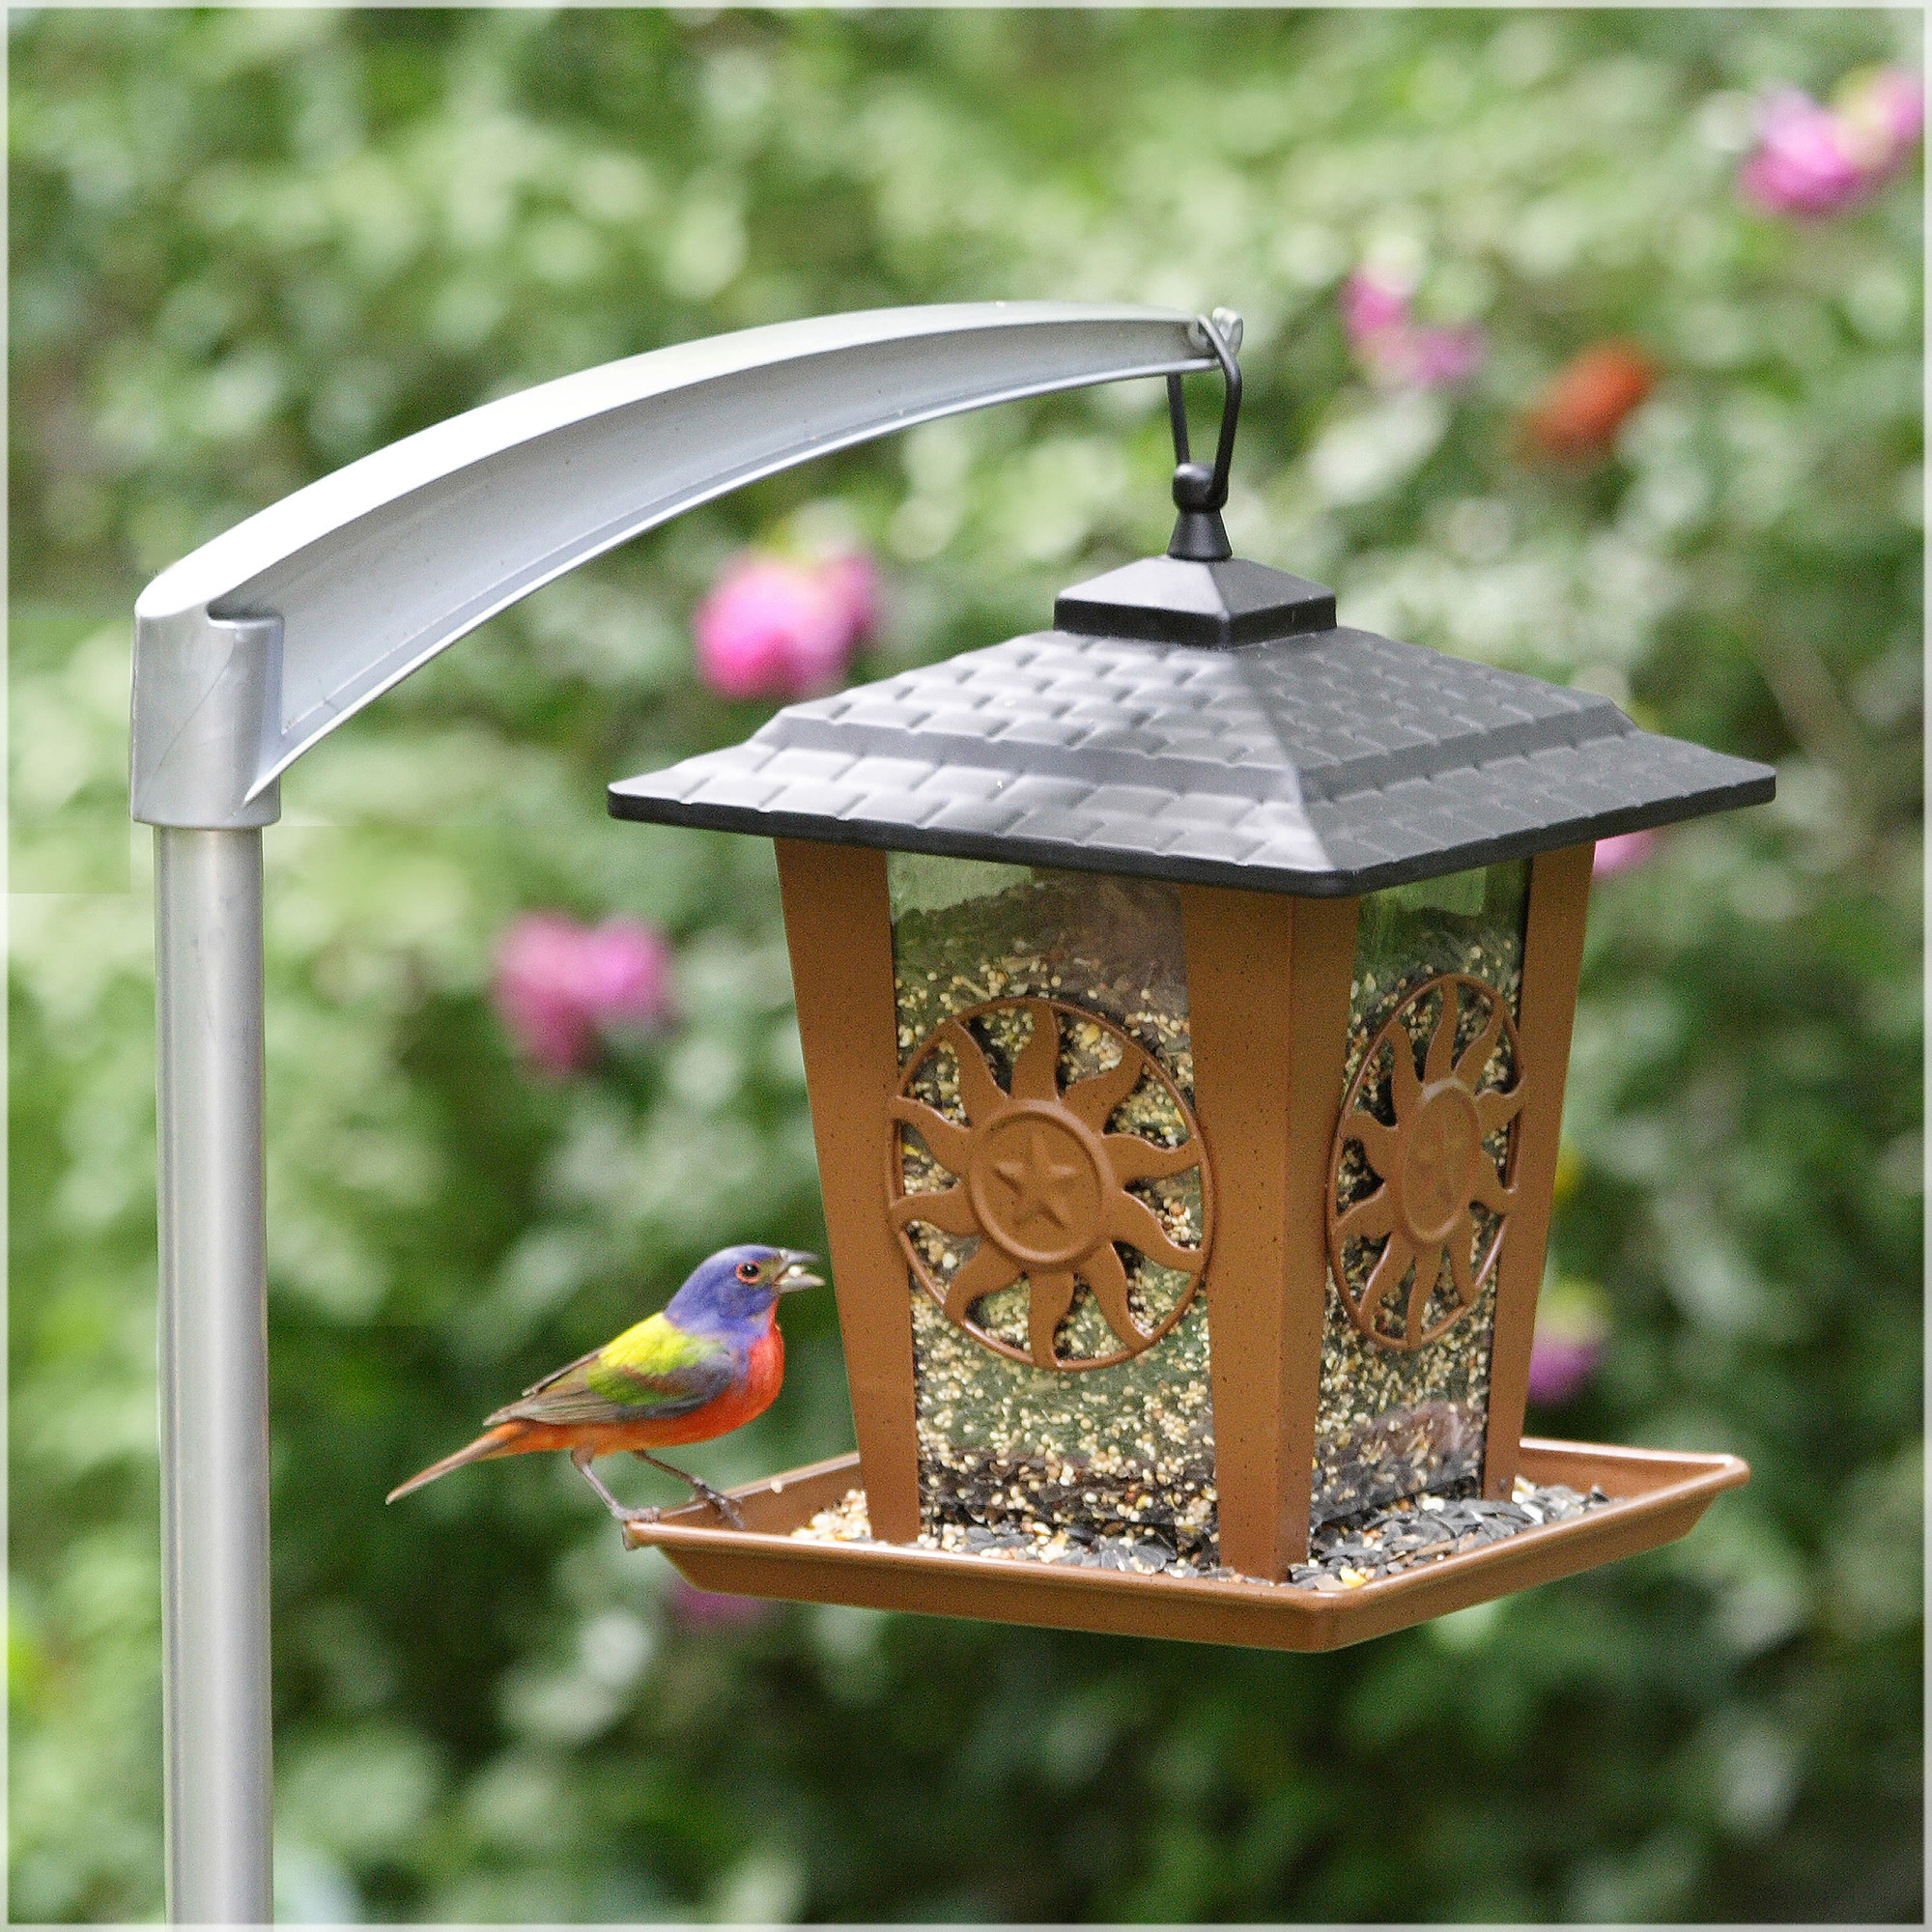 The Perky-Pet Sun and Star Lantern Wild Bird Feeder hangs from a post. A rainbow bird sits on its ledge, eating seed.